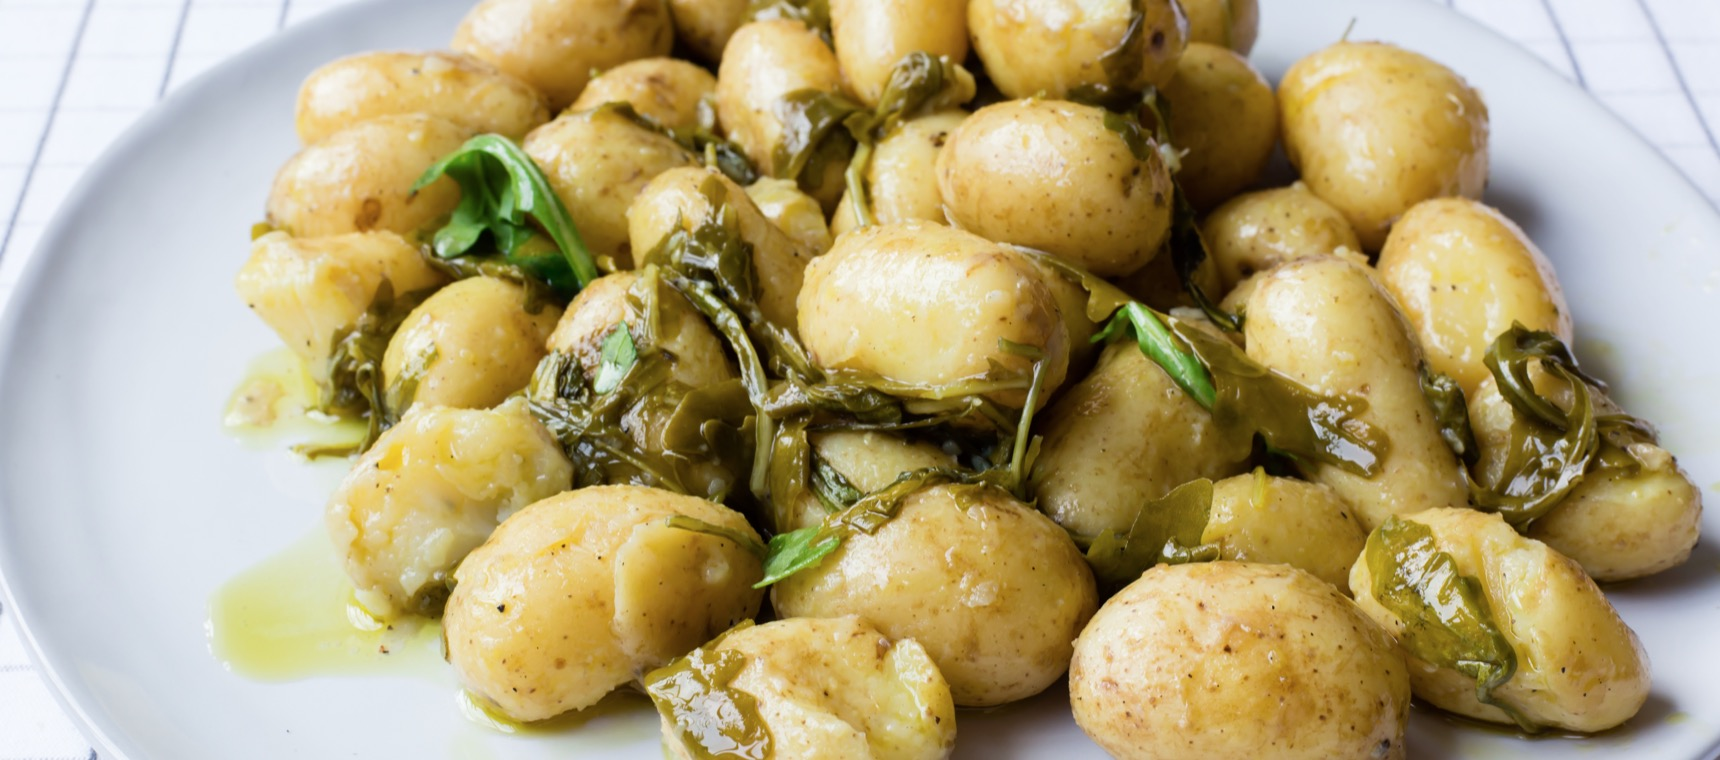 Warm Potato Salad with Rocket